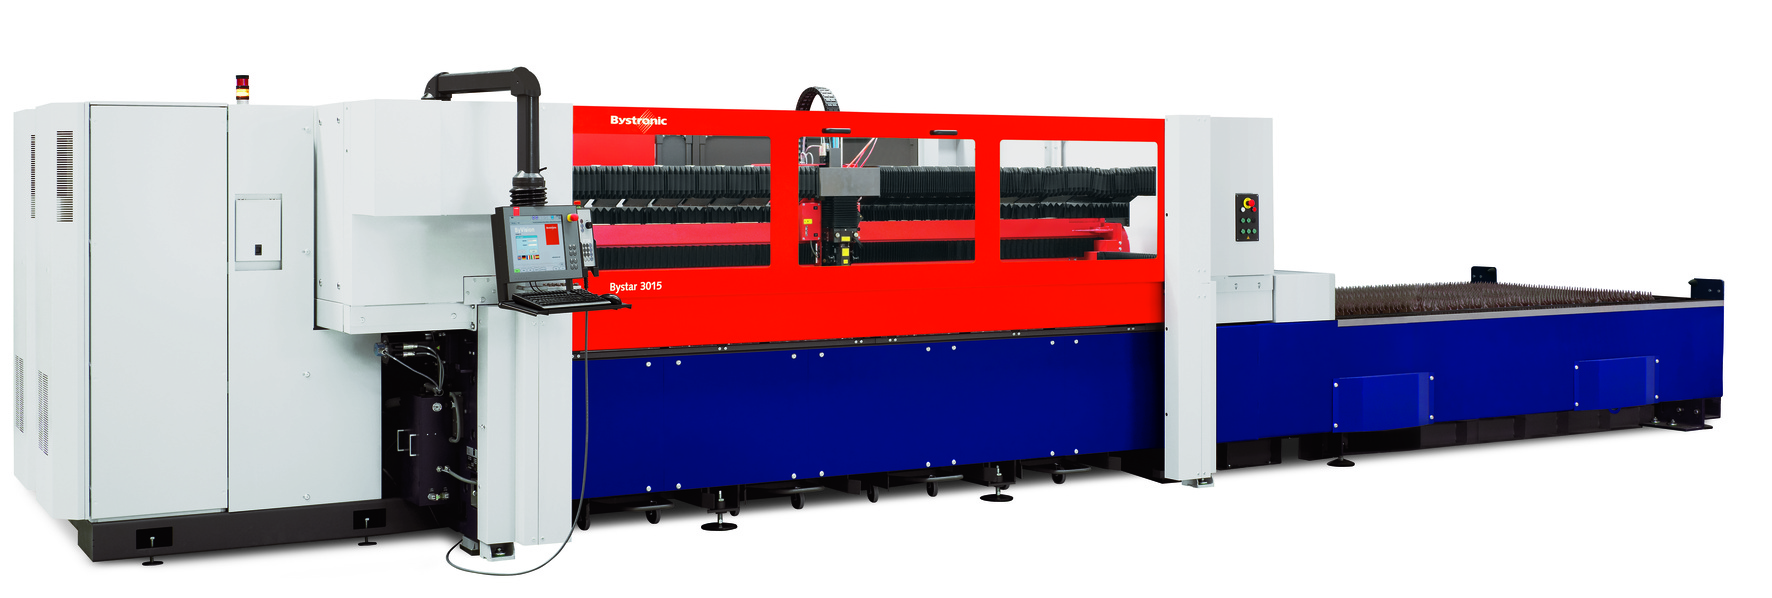 Laser Cutting Machine by Bystronic